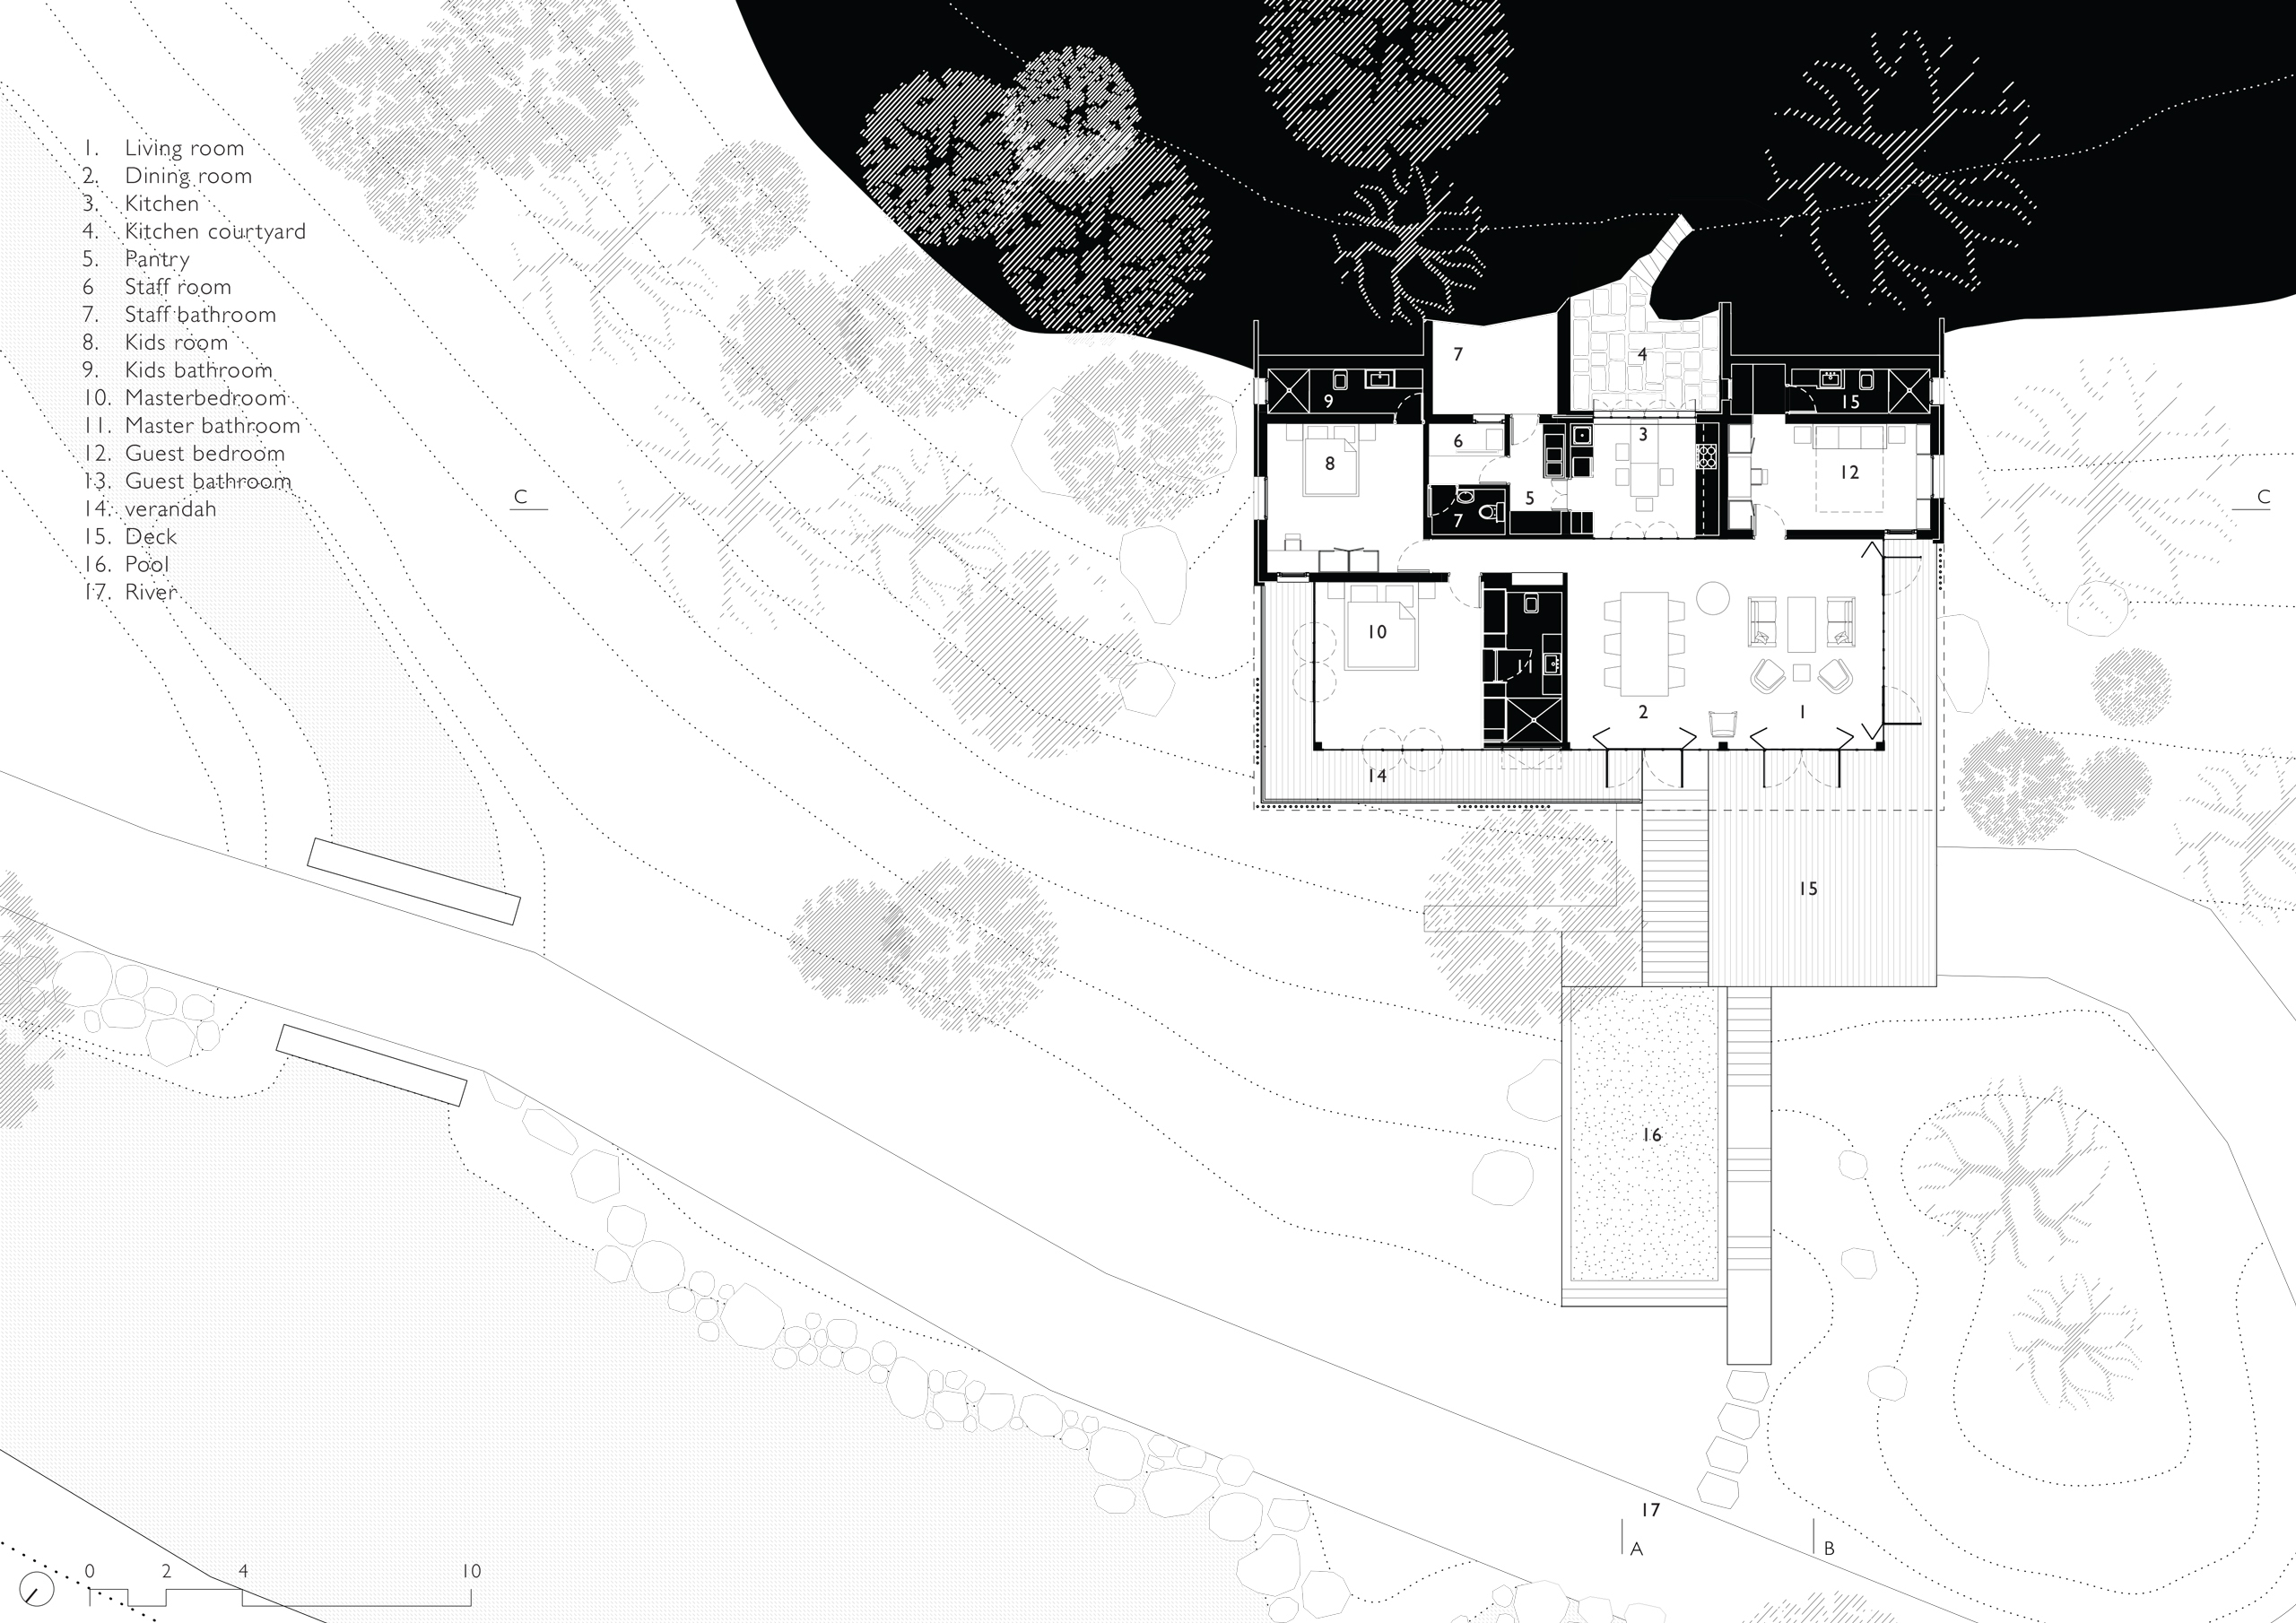 Floor plan of the Riparian House in Karjat, Mumbai